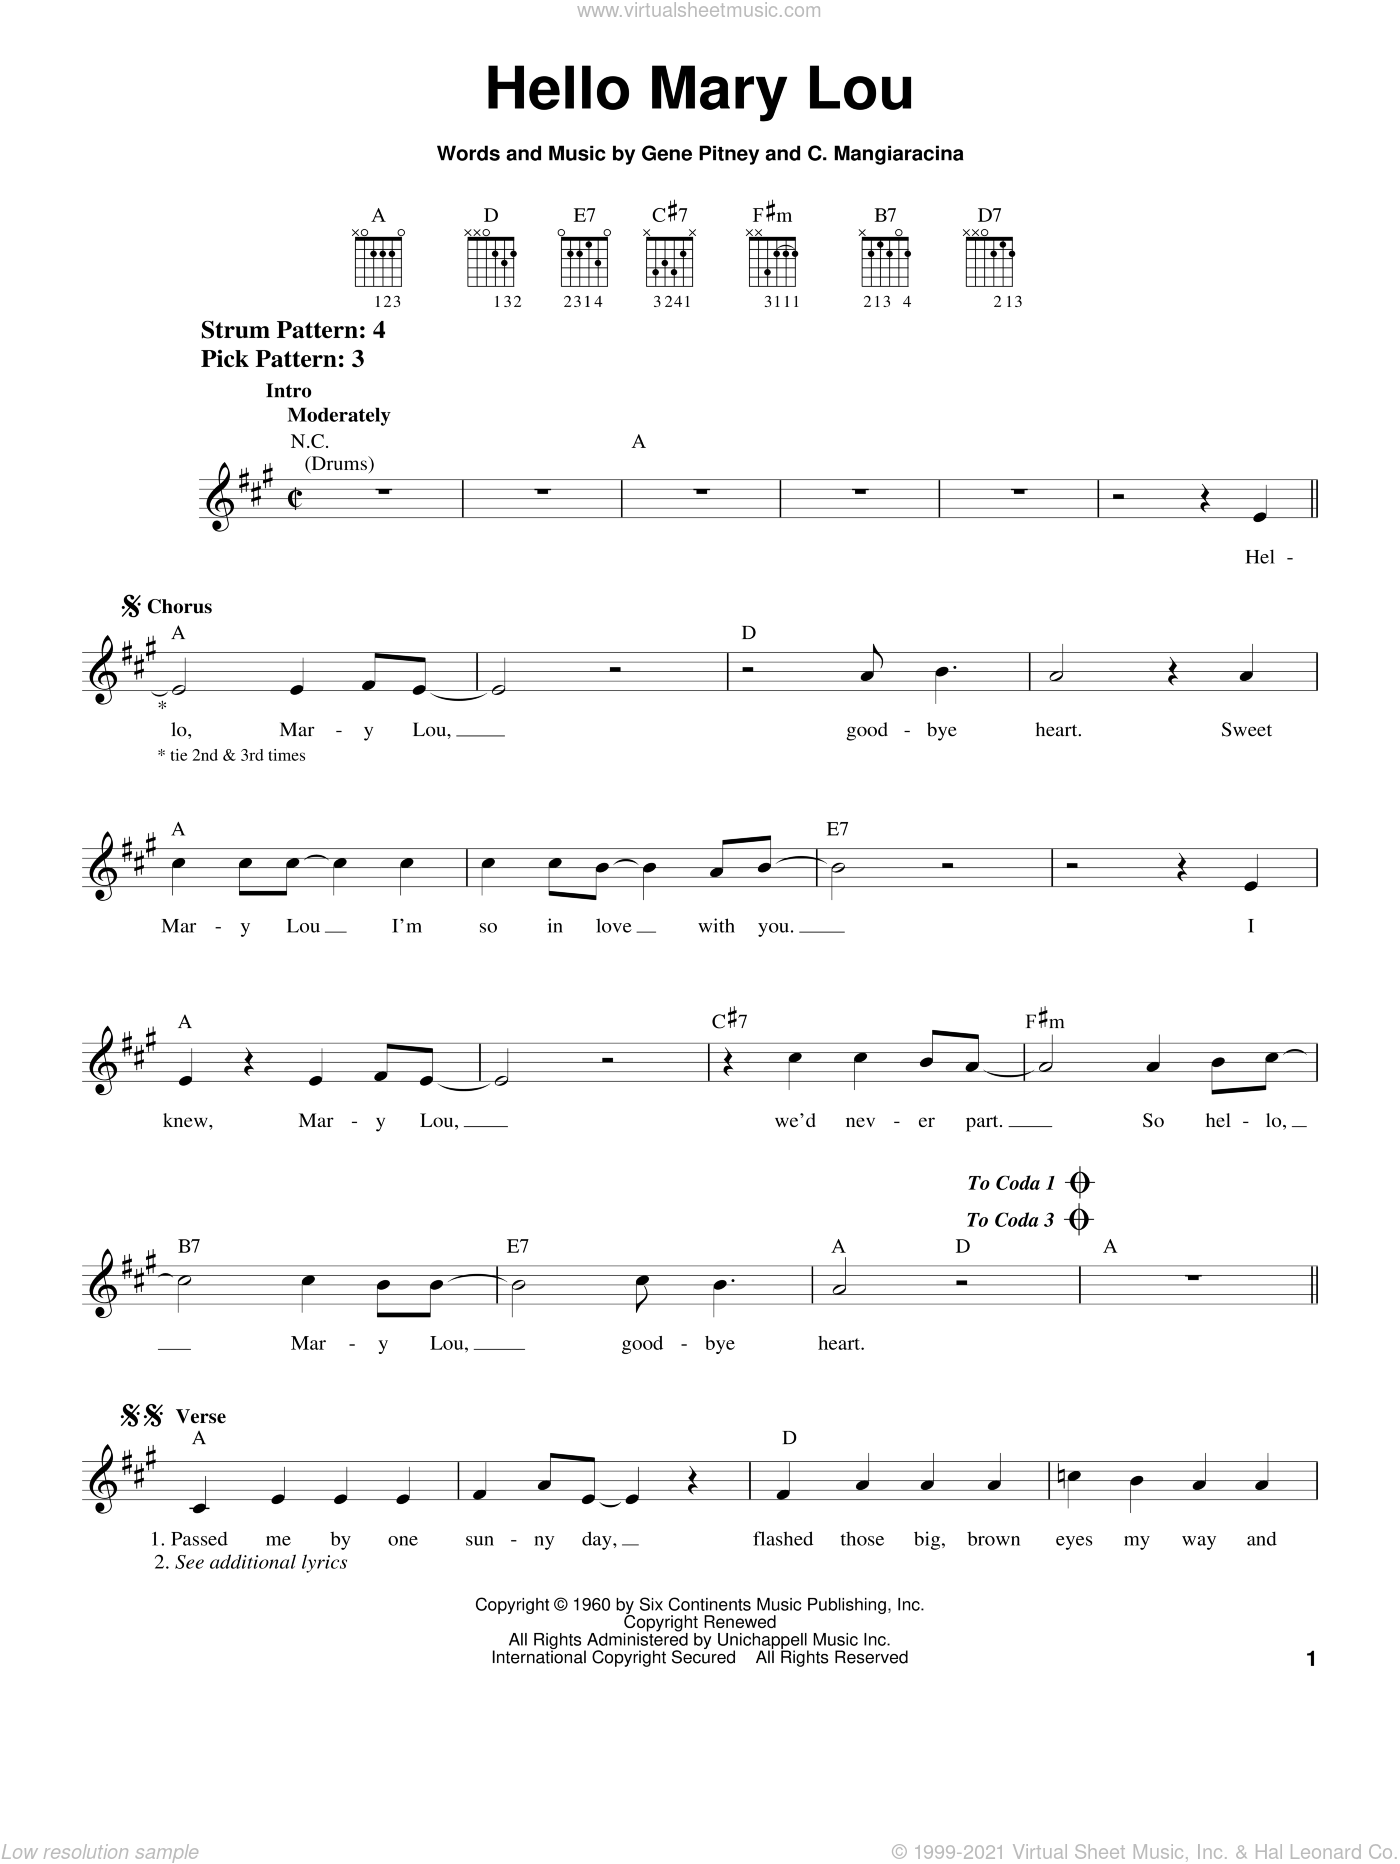 Hello Mary Lou sheet music for guitar solo (chords) by Gene Pitney